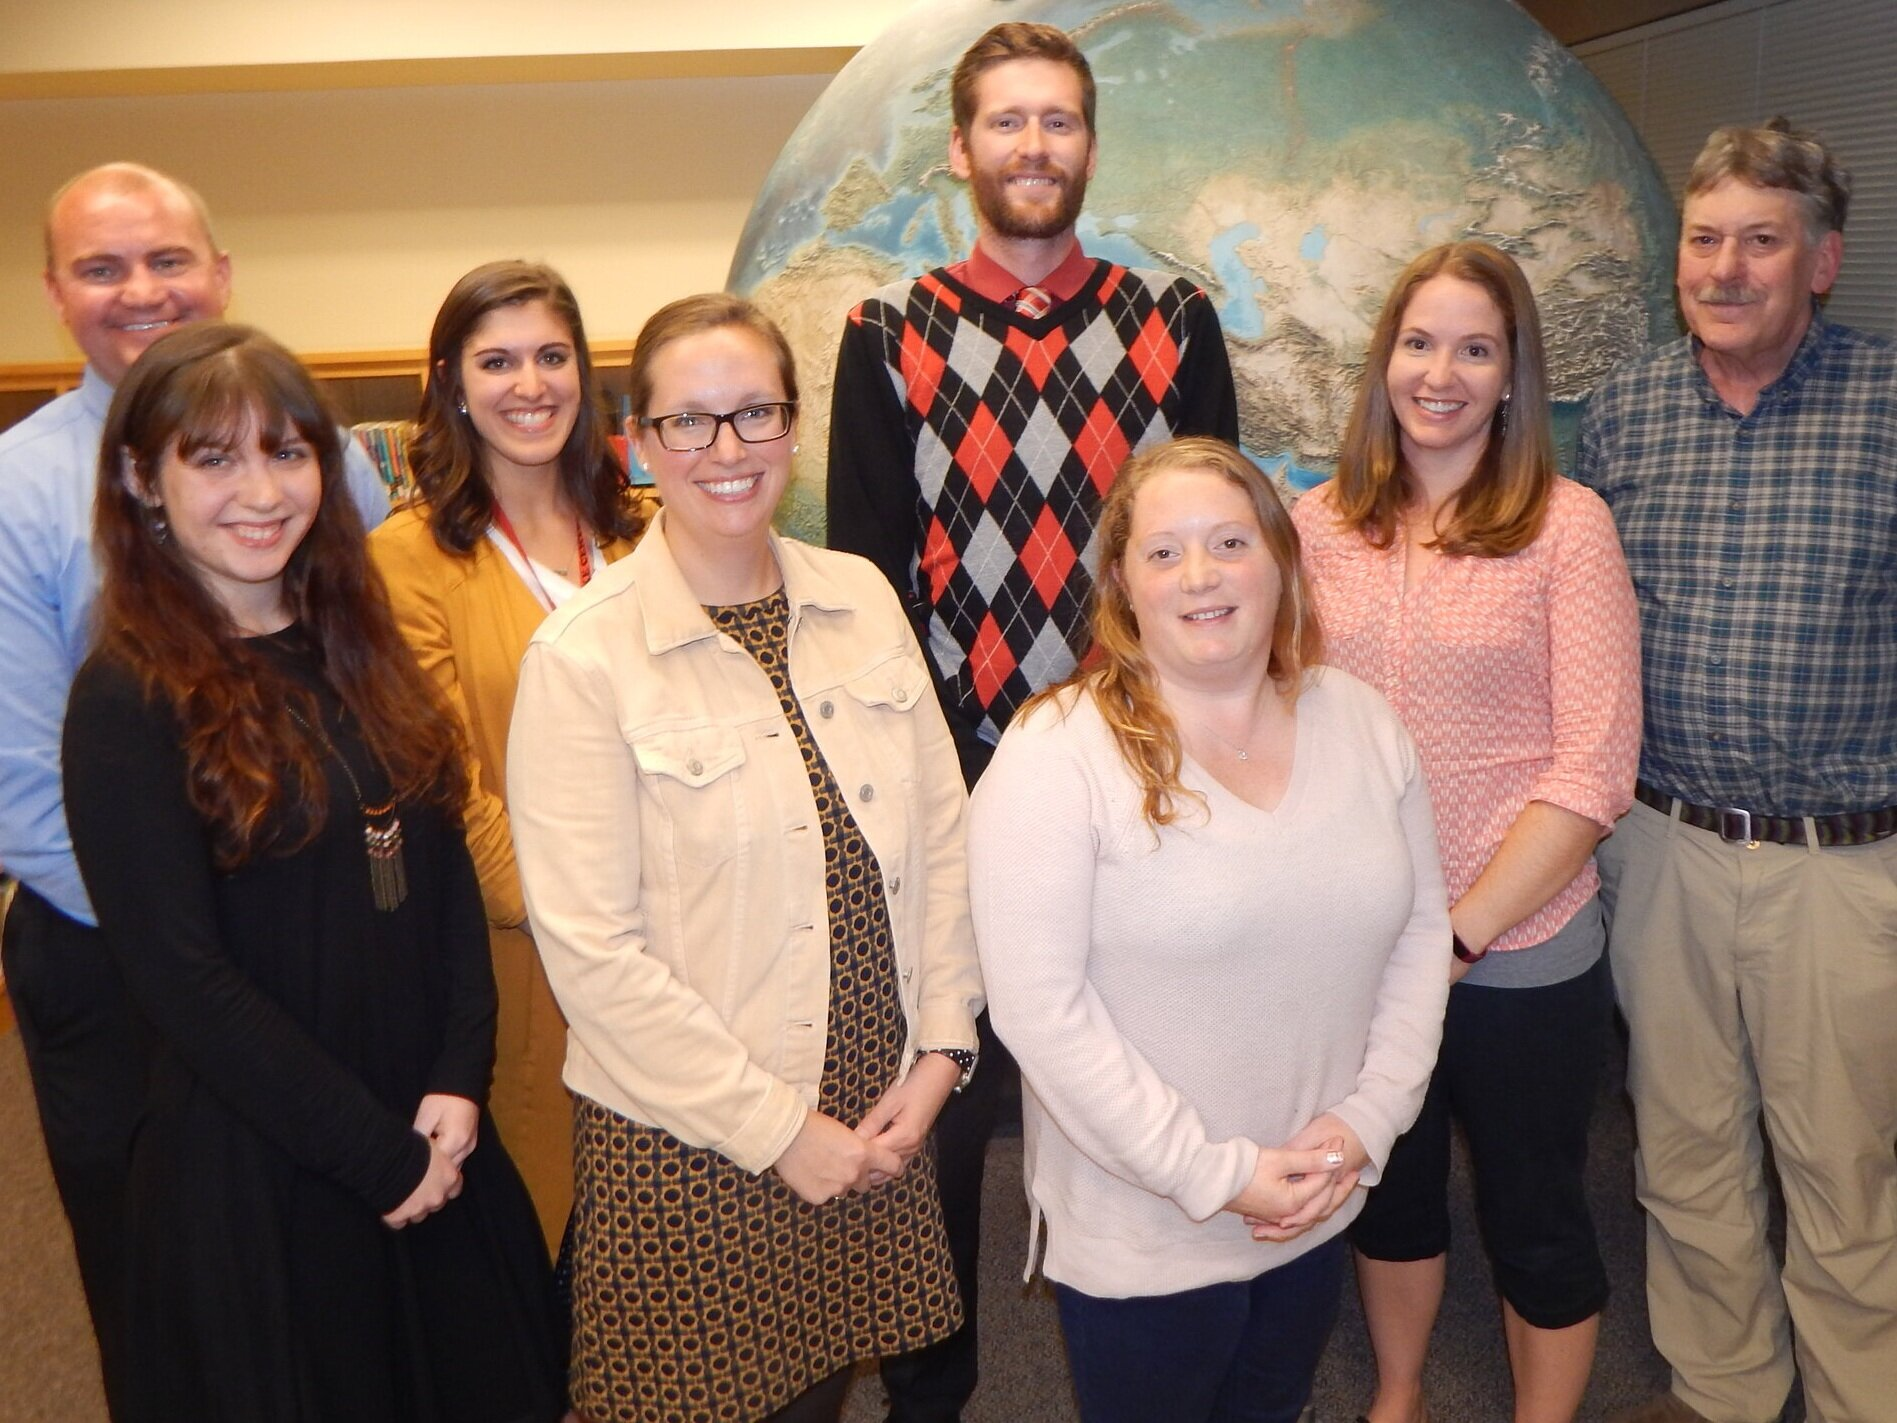 New faculty members welcomed to the Tupper Lake School District, from left: Andrew Heslink, Corinne Mather, Lindsey Maroun, Elizabeth Littlefield, Jacob Klossner, Whitney Bennett Britt, Amy Wilson and Mark Lienau. Not pictured are Heather Andresen and Melissa DeVirgeles (new school nurse). (Rich Rosentreter photos)